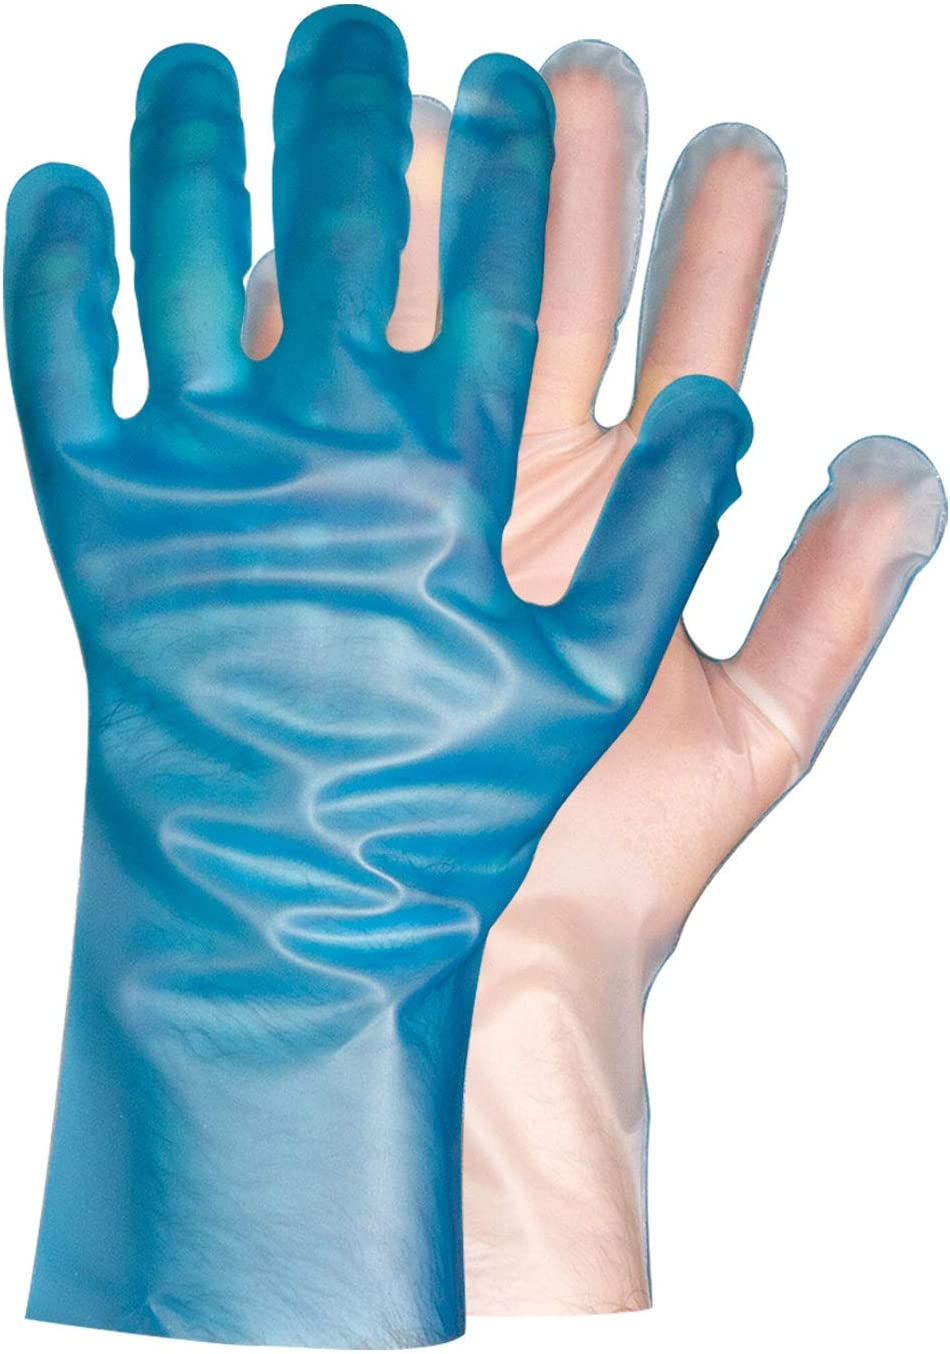 Super Strong Disposable BBQ Gloves by Protospheric. Food Prep Safety Cut /Tear Resistant Level 1, Abrasion Chemical Water Resistant. Free of: Nitrile Latex Vinyl Rubber Powder. 10 pair S 71JIzQNEeSL